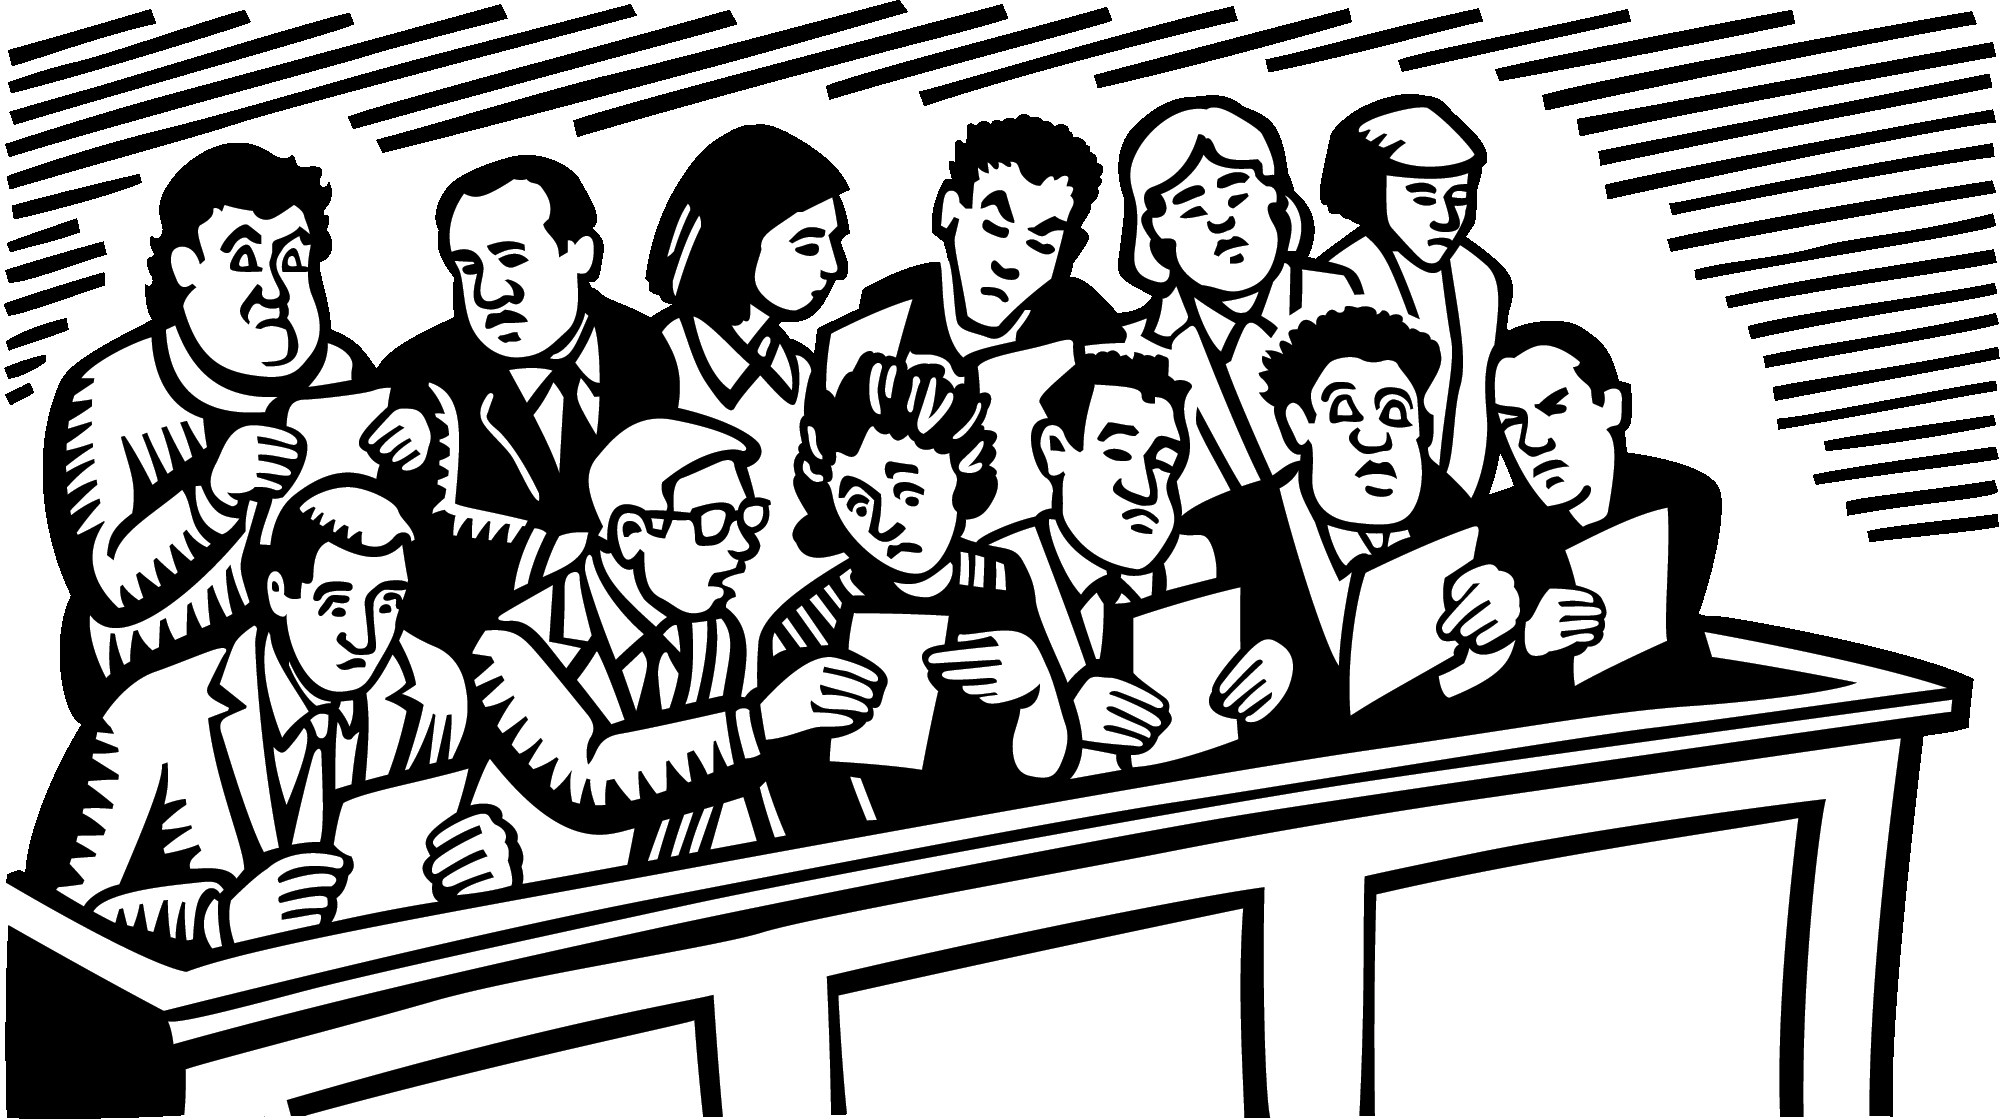 Jury images clipart banner freeuse download Jury clipart 7 » Clipart Portal banner freeuse download